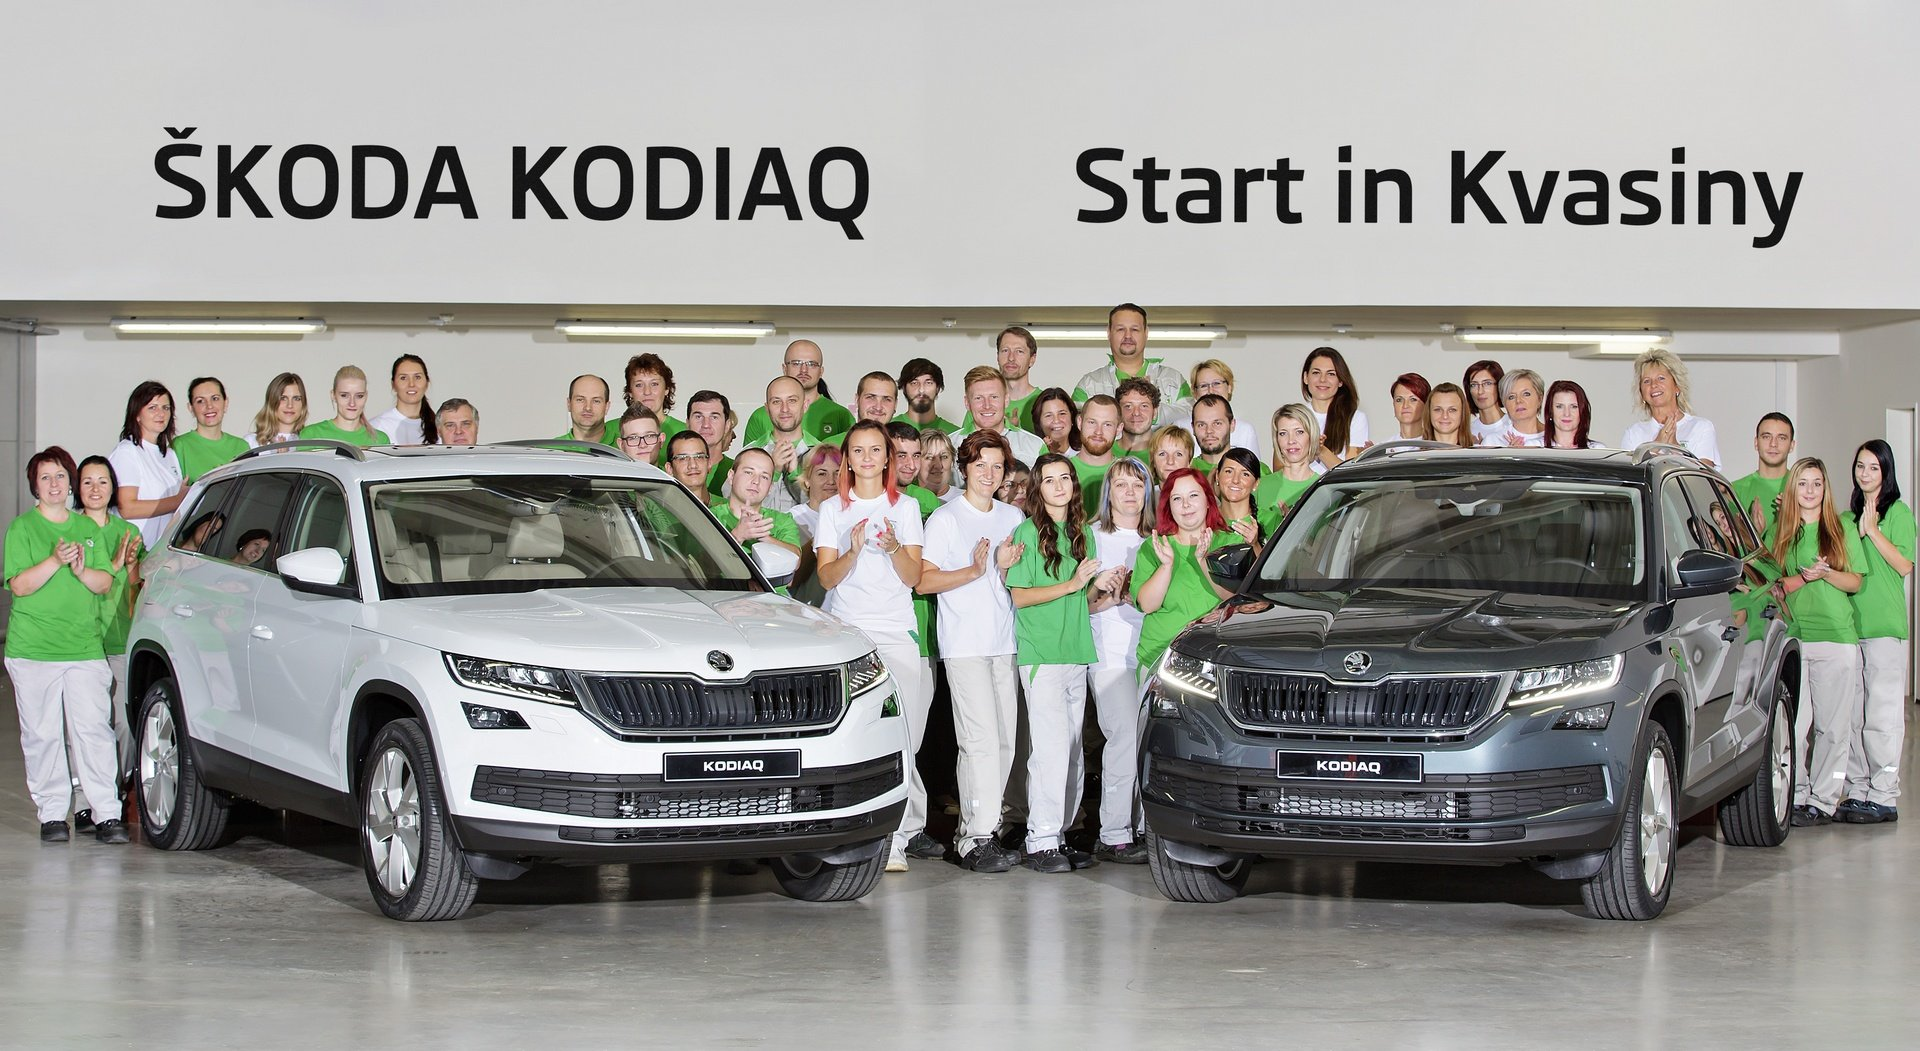 skoda-kodiaq-kvasiny-production-1